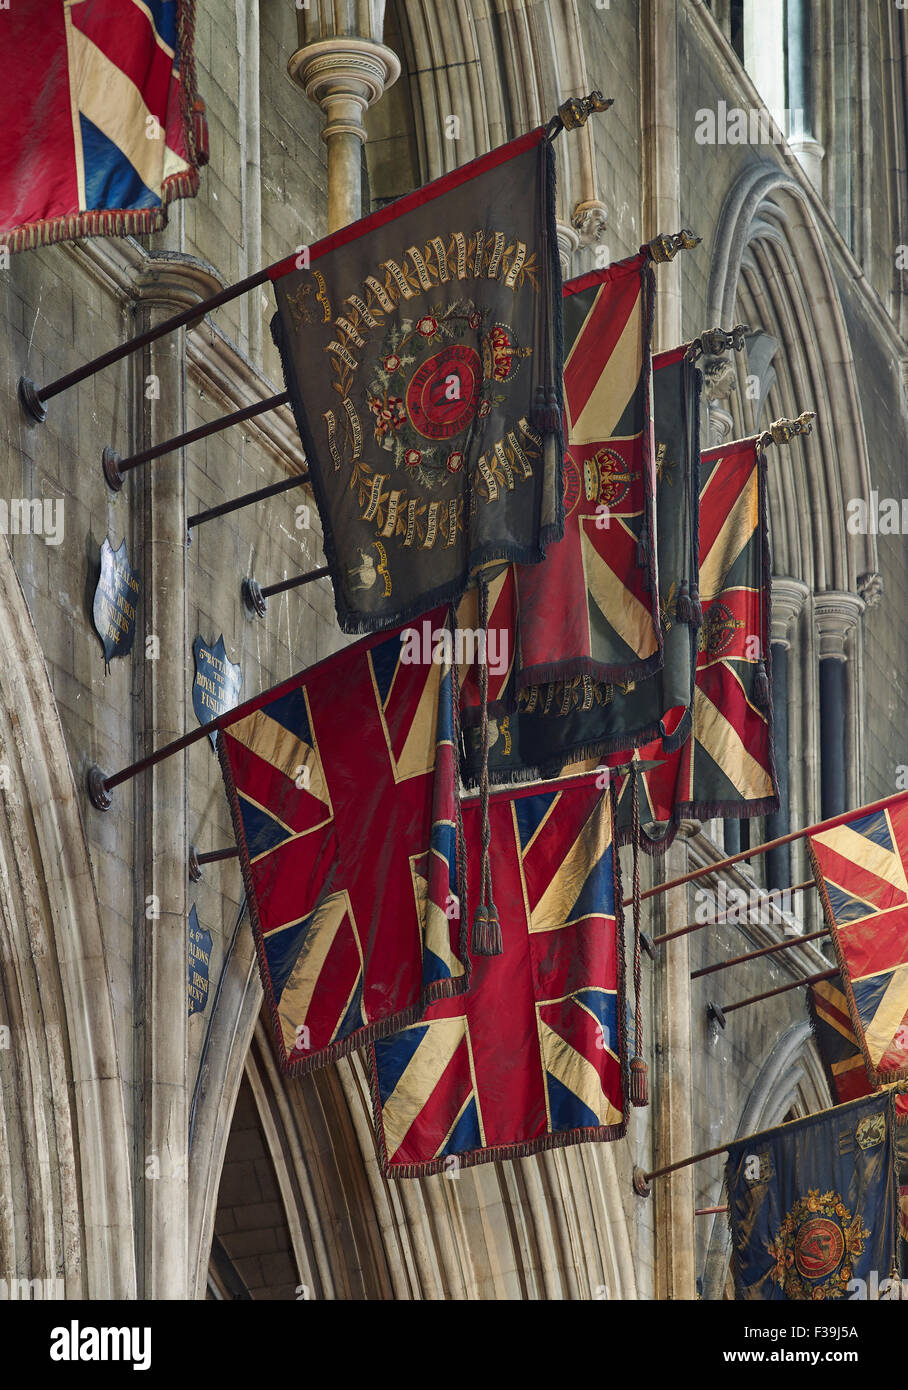 St Patrick's Cathedral Dublin north transept flags - Stock Image